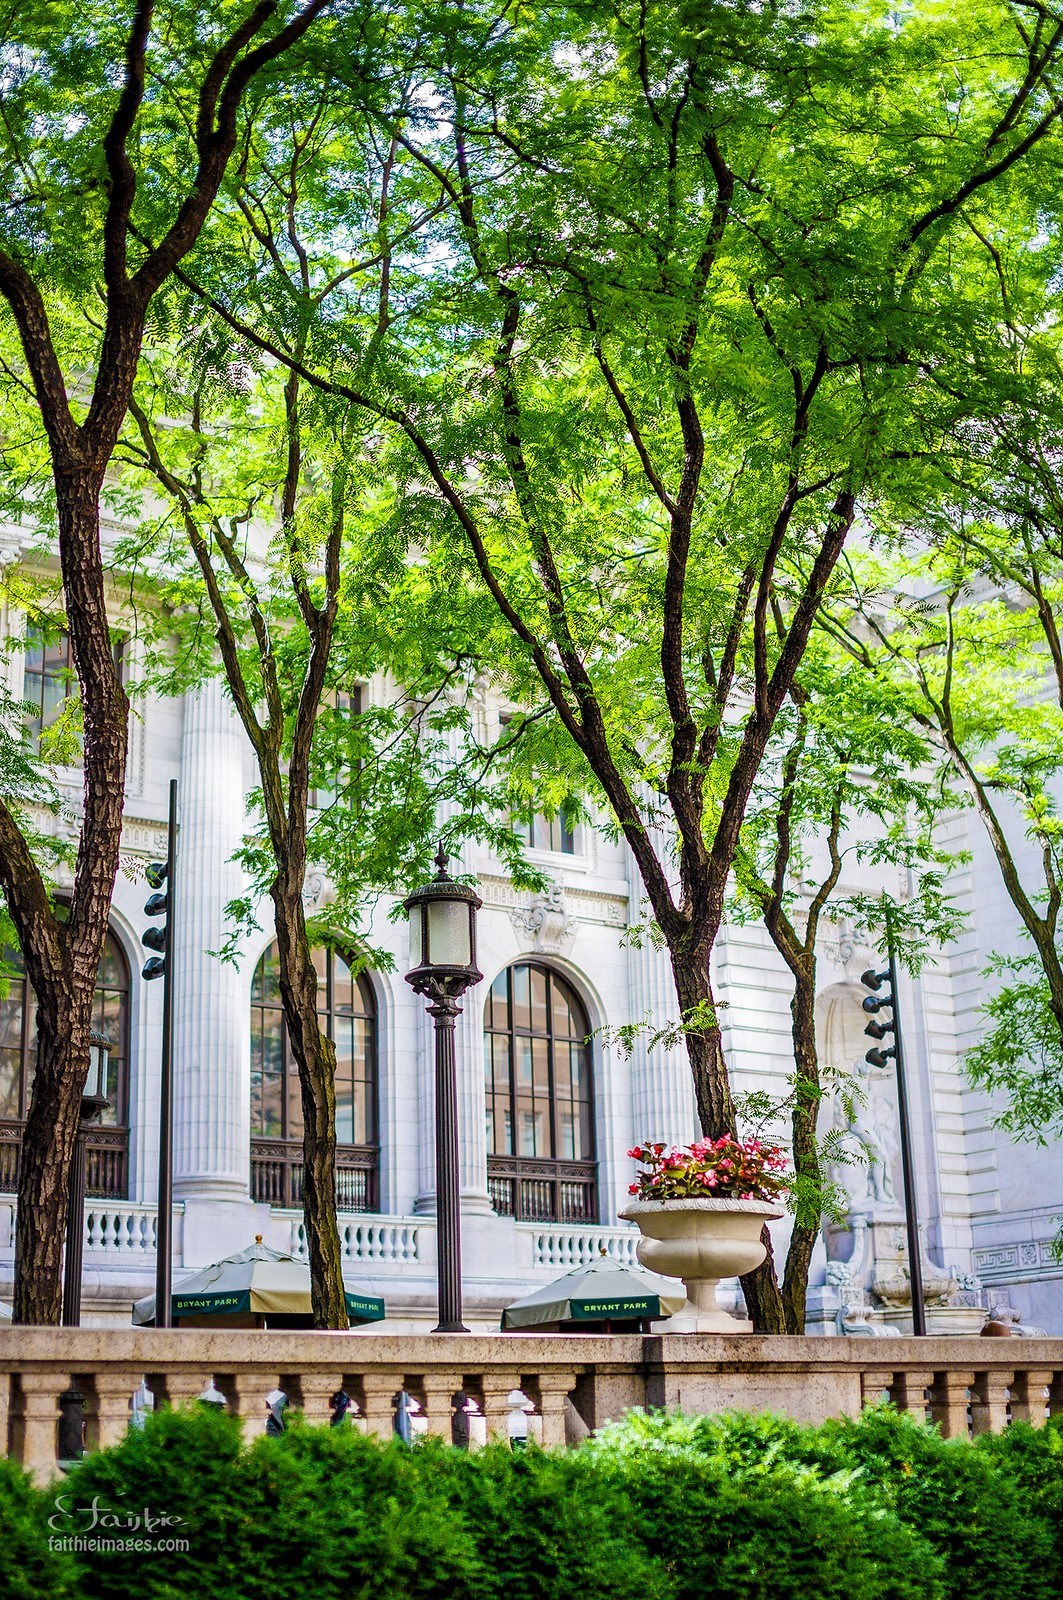 Green and charming corners of New York city centre